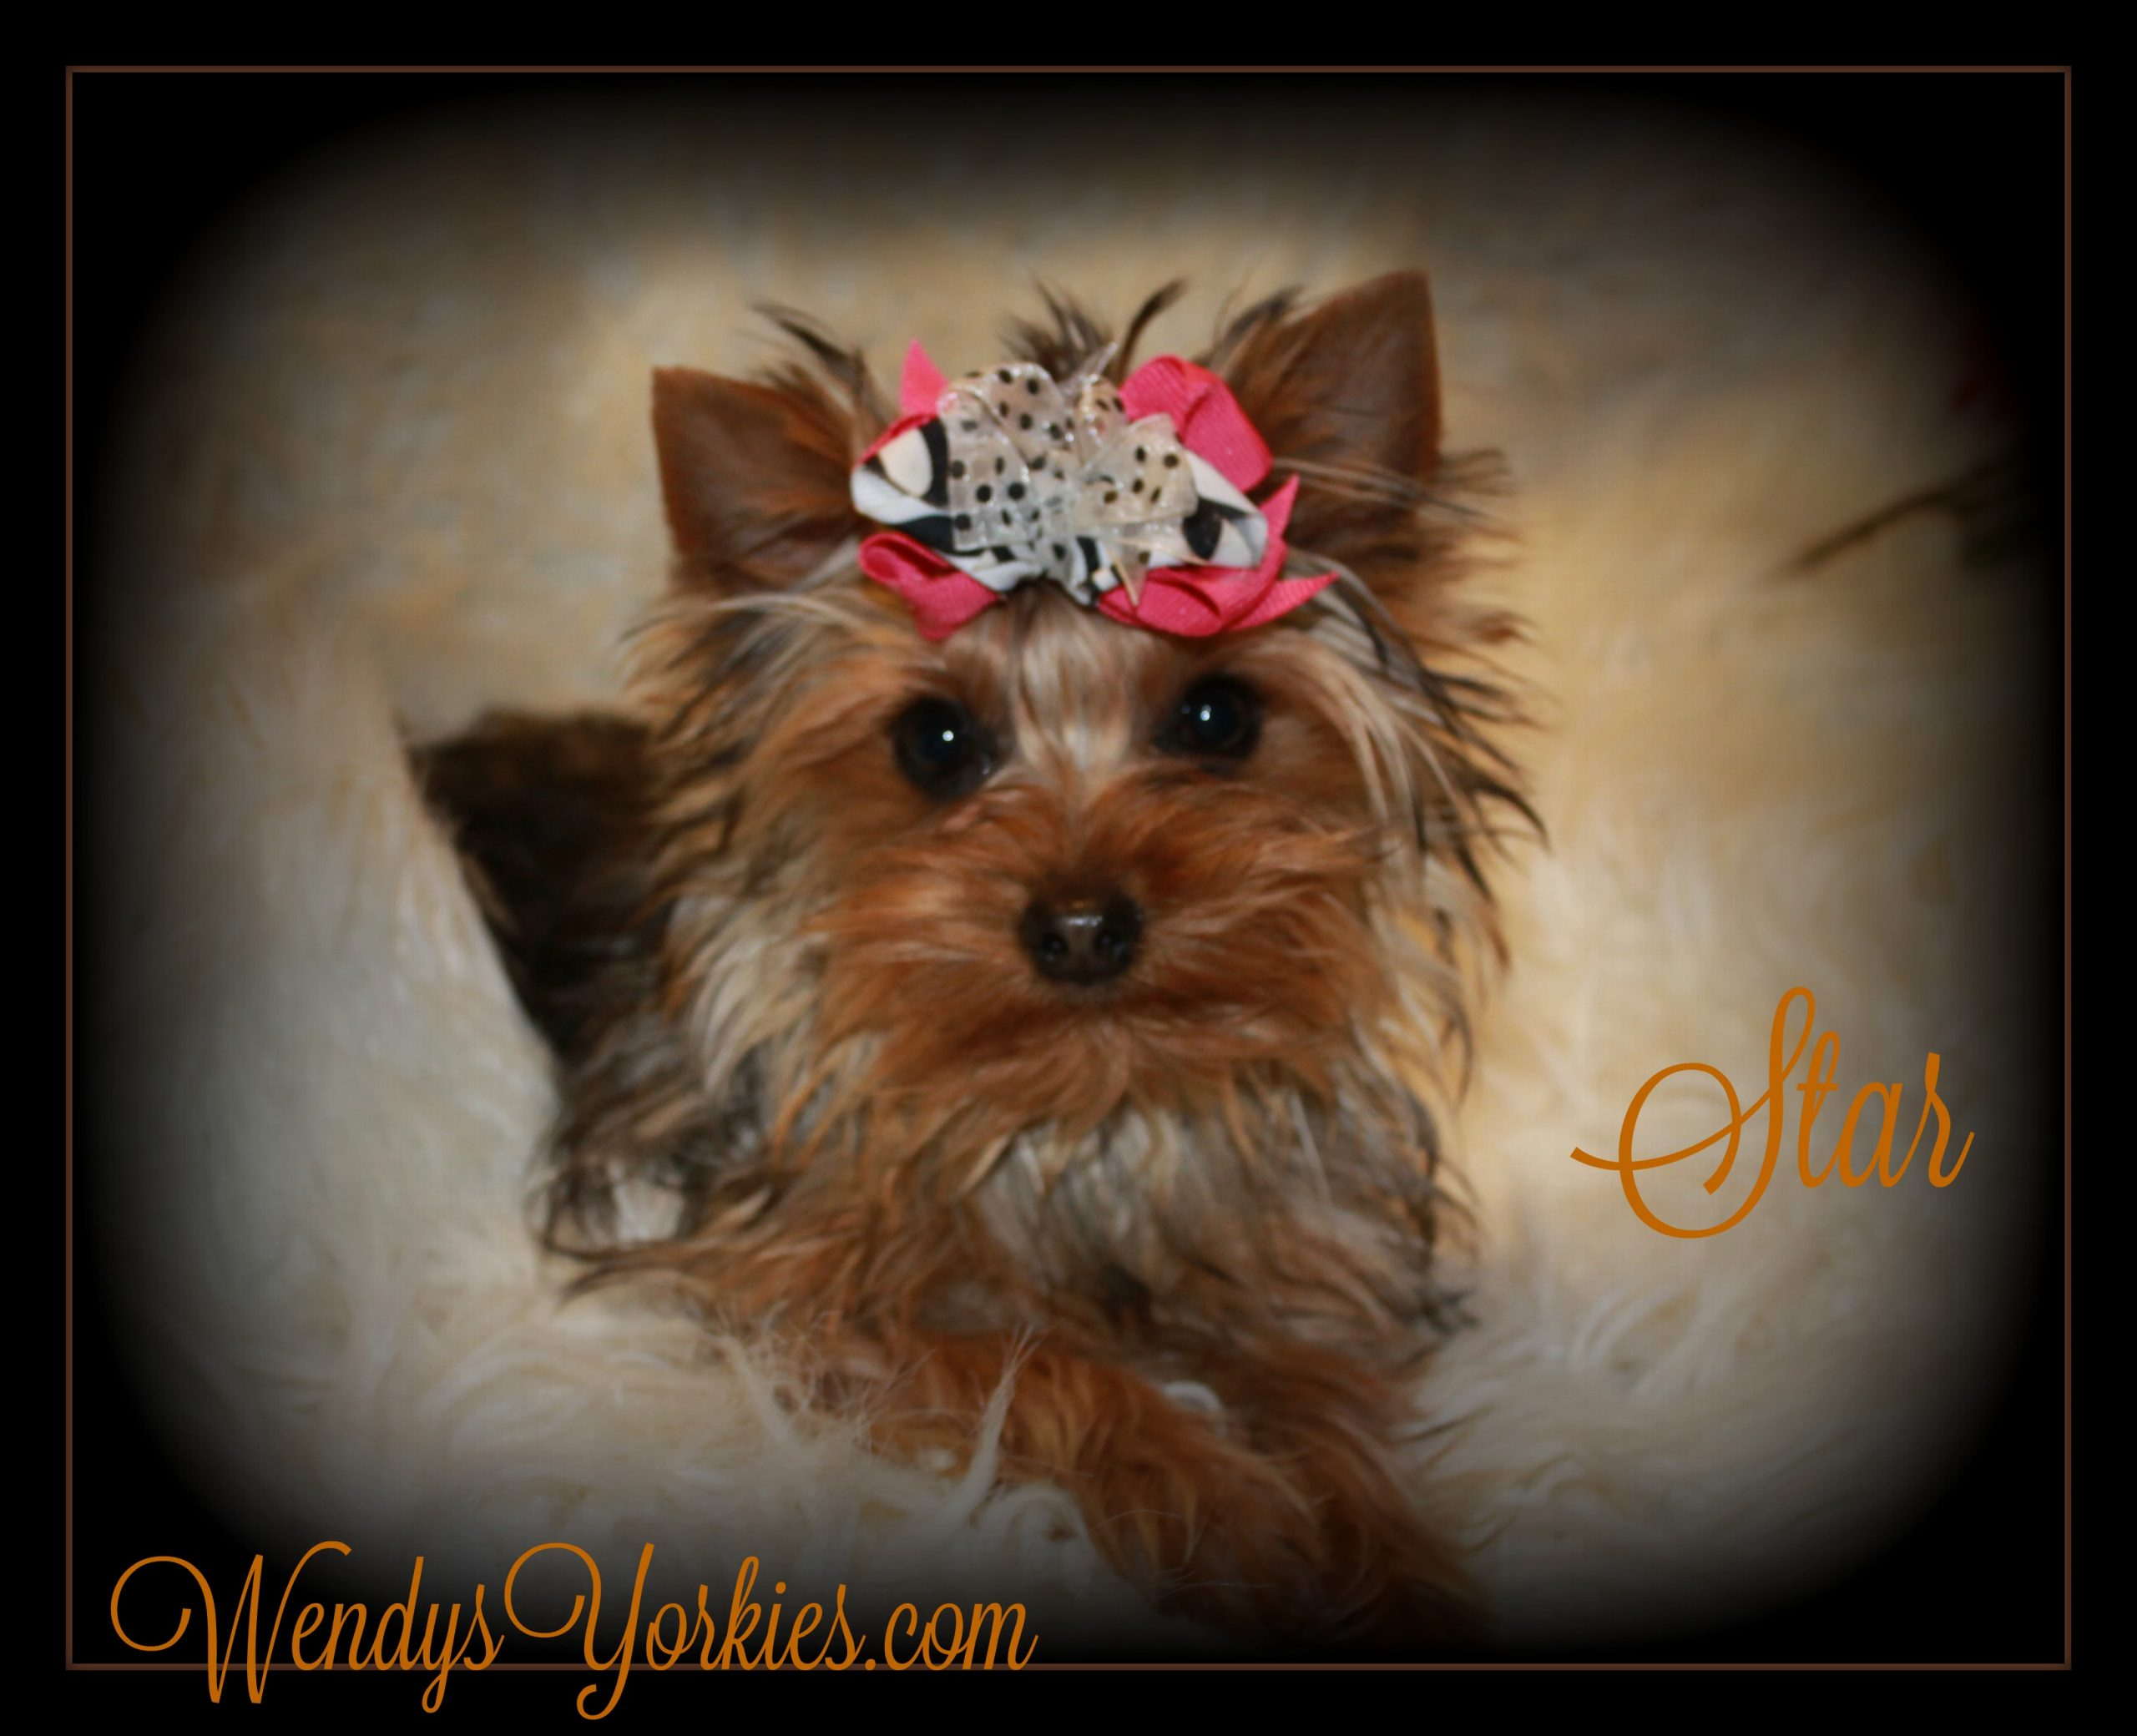 Yorkie puppy breeder, WendysYorkies, Star